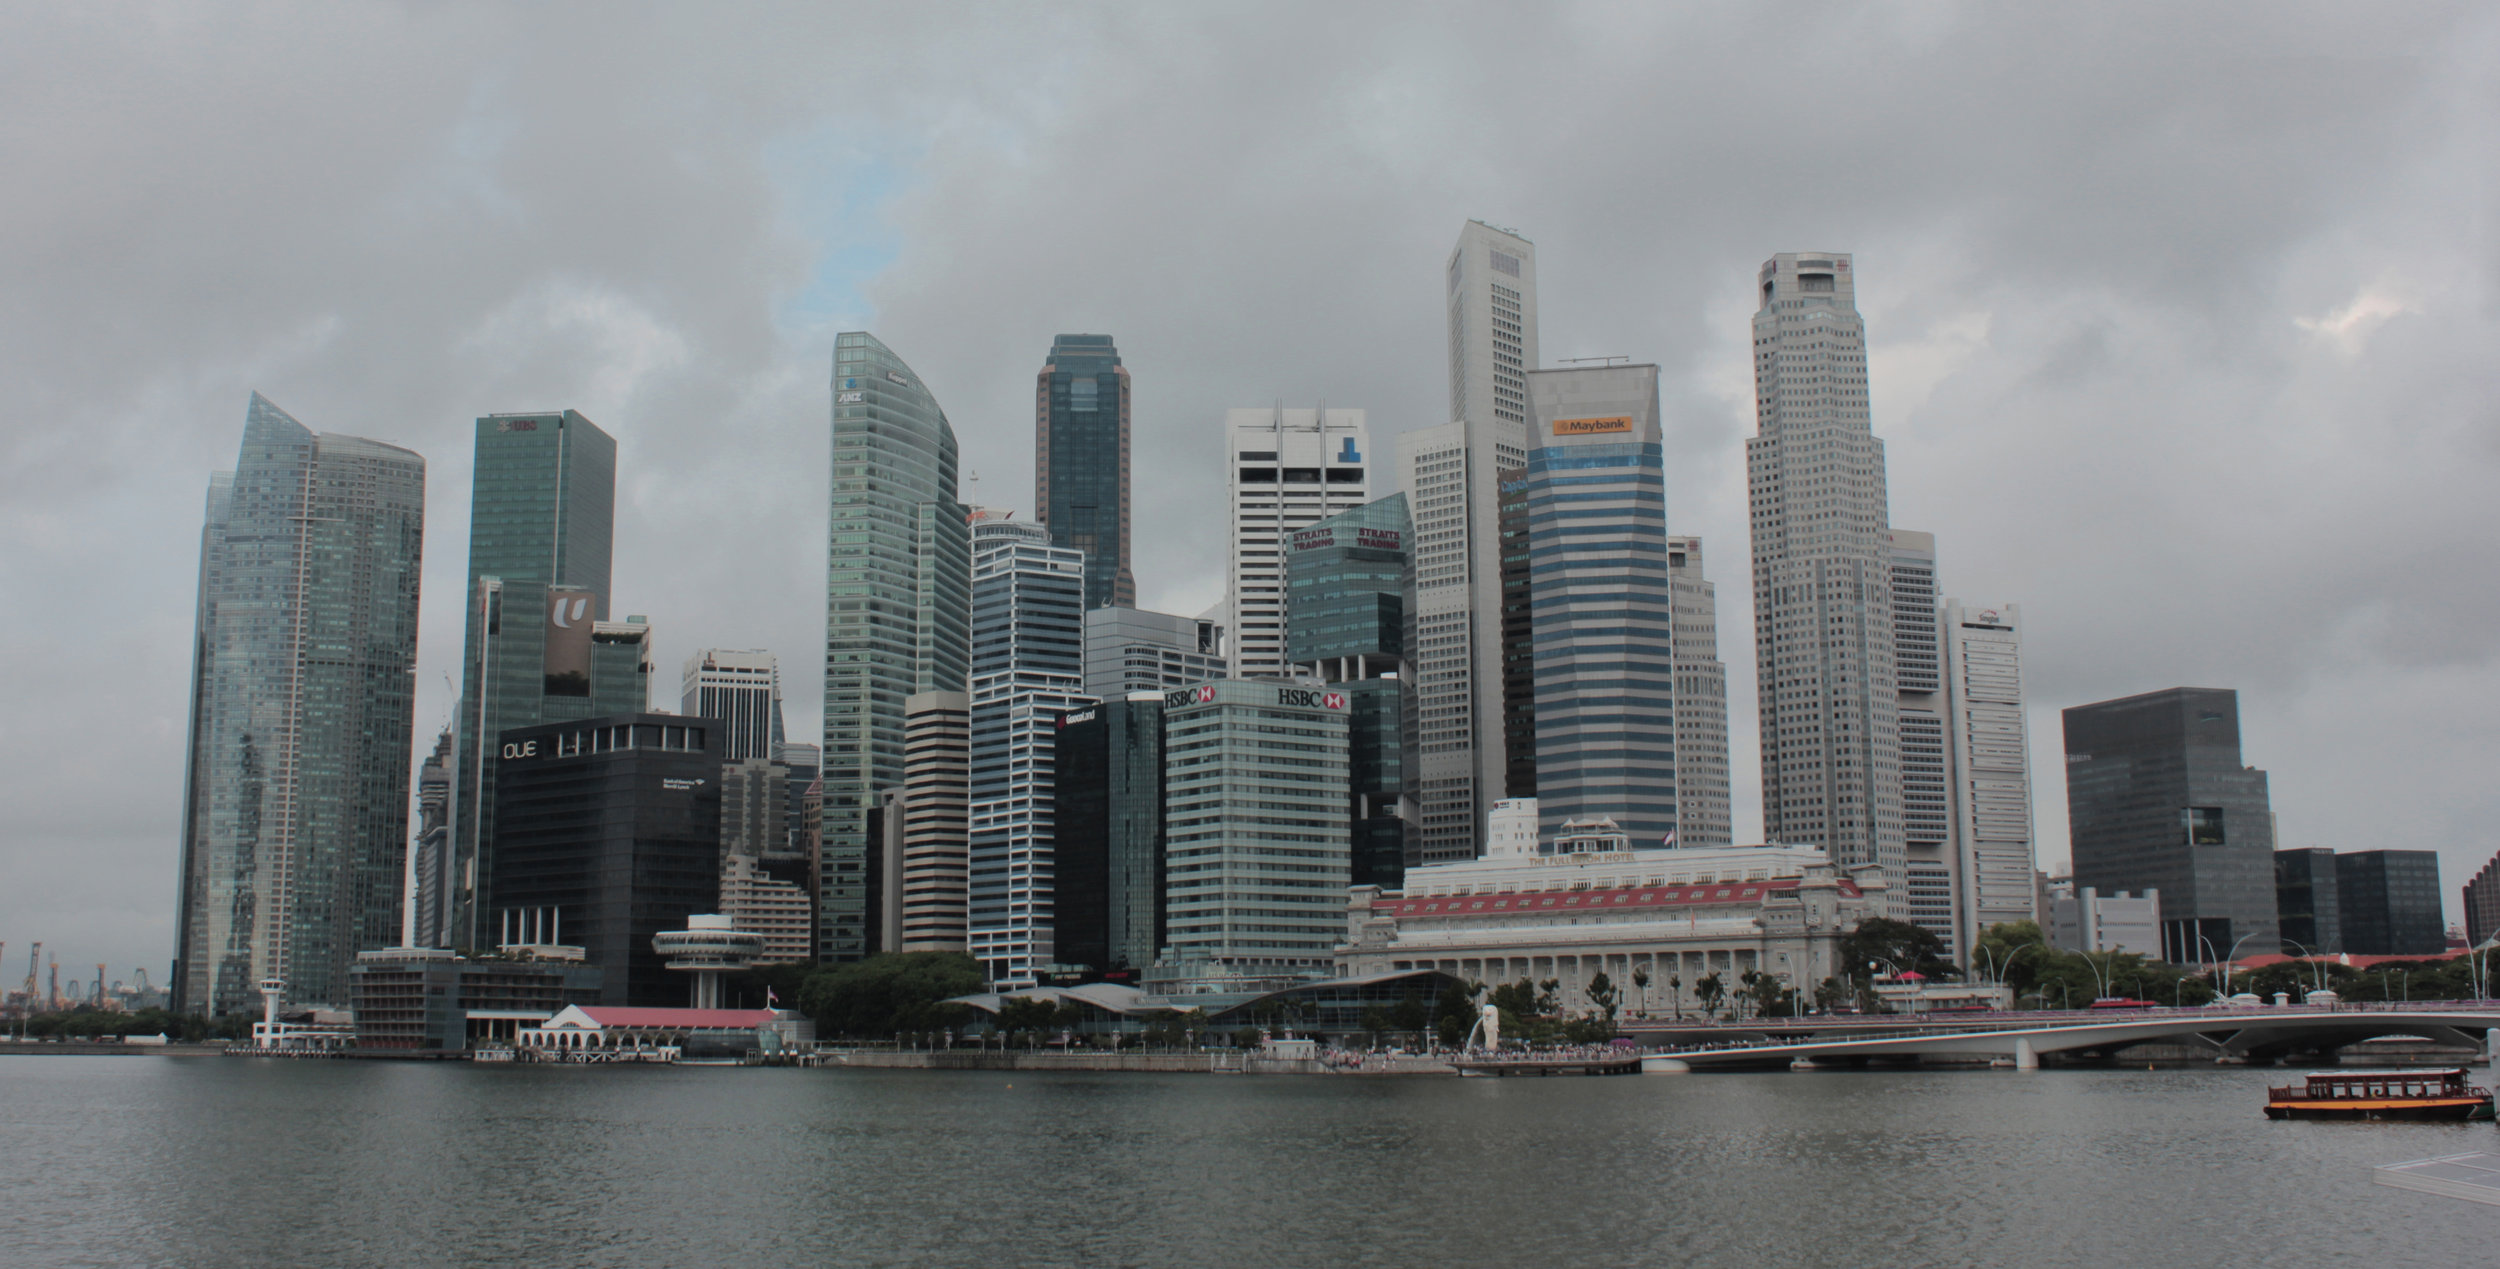 View of city scape from Marina Bay